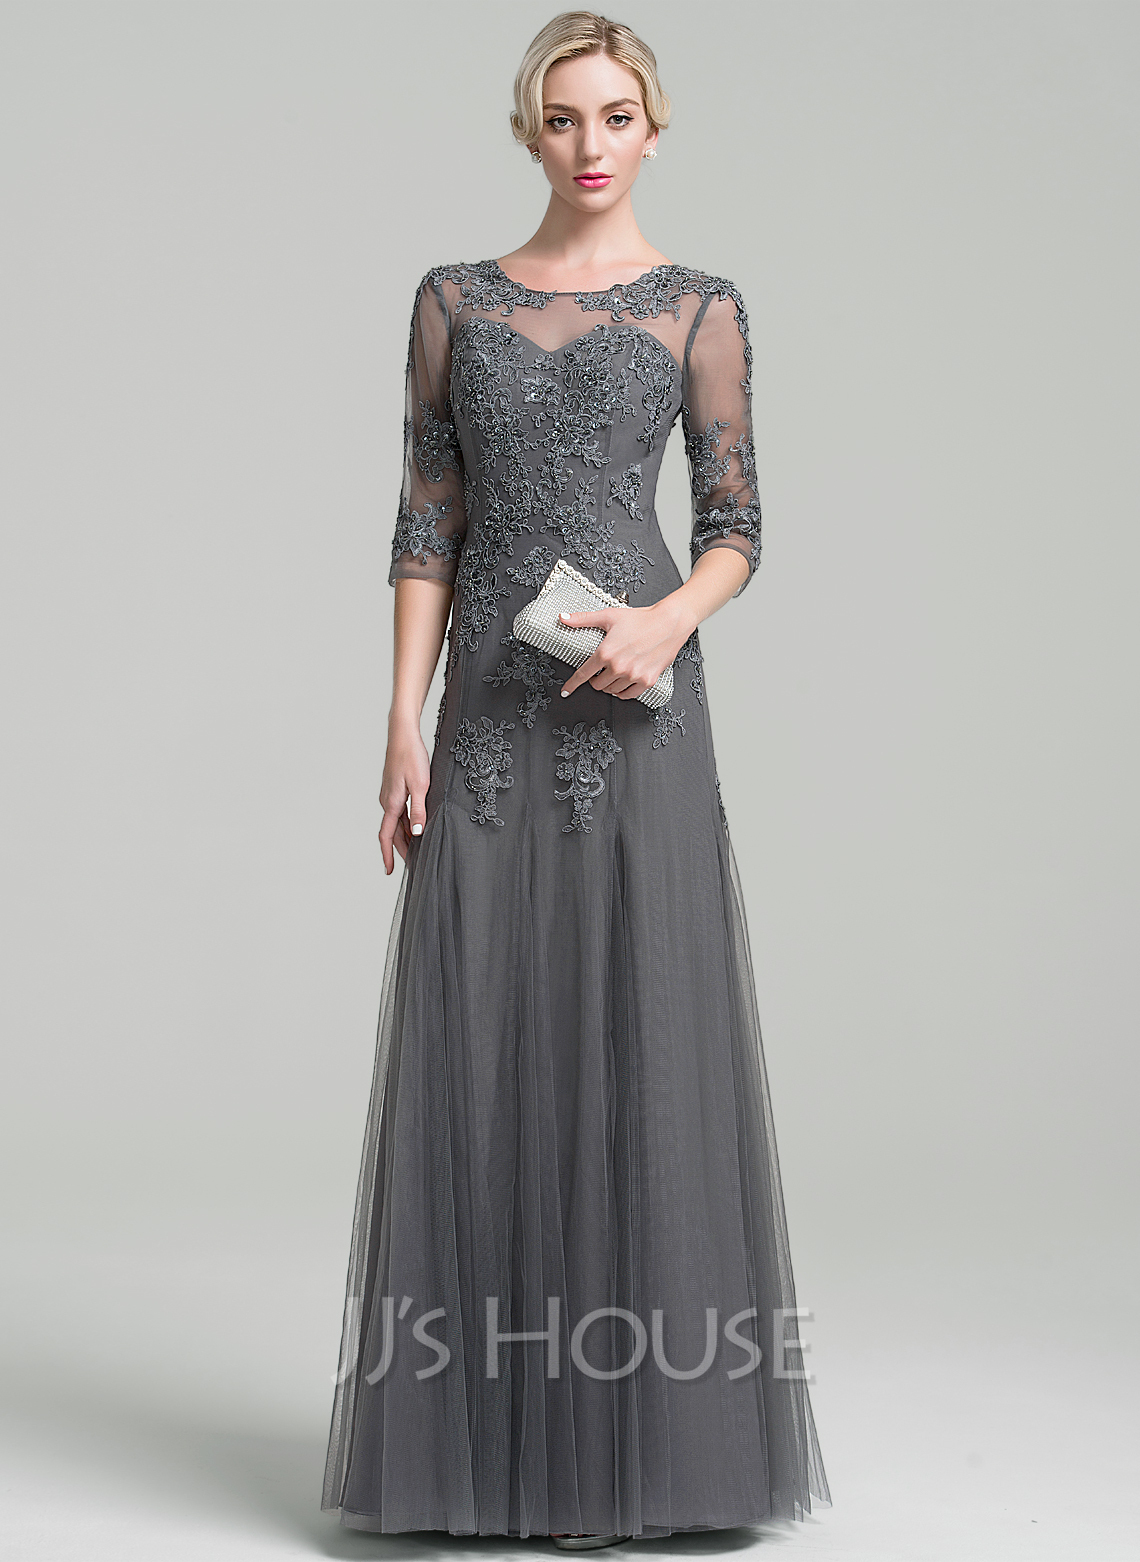 5b1e3cff04c A-Line Princess Scoop Neck Floor-Length Tulle Mother of the Bride Dress.  Loading zoom